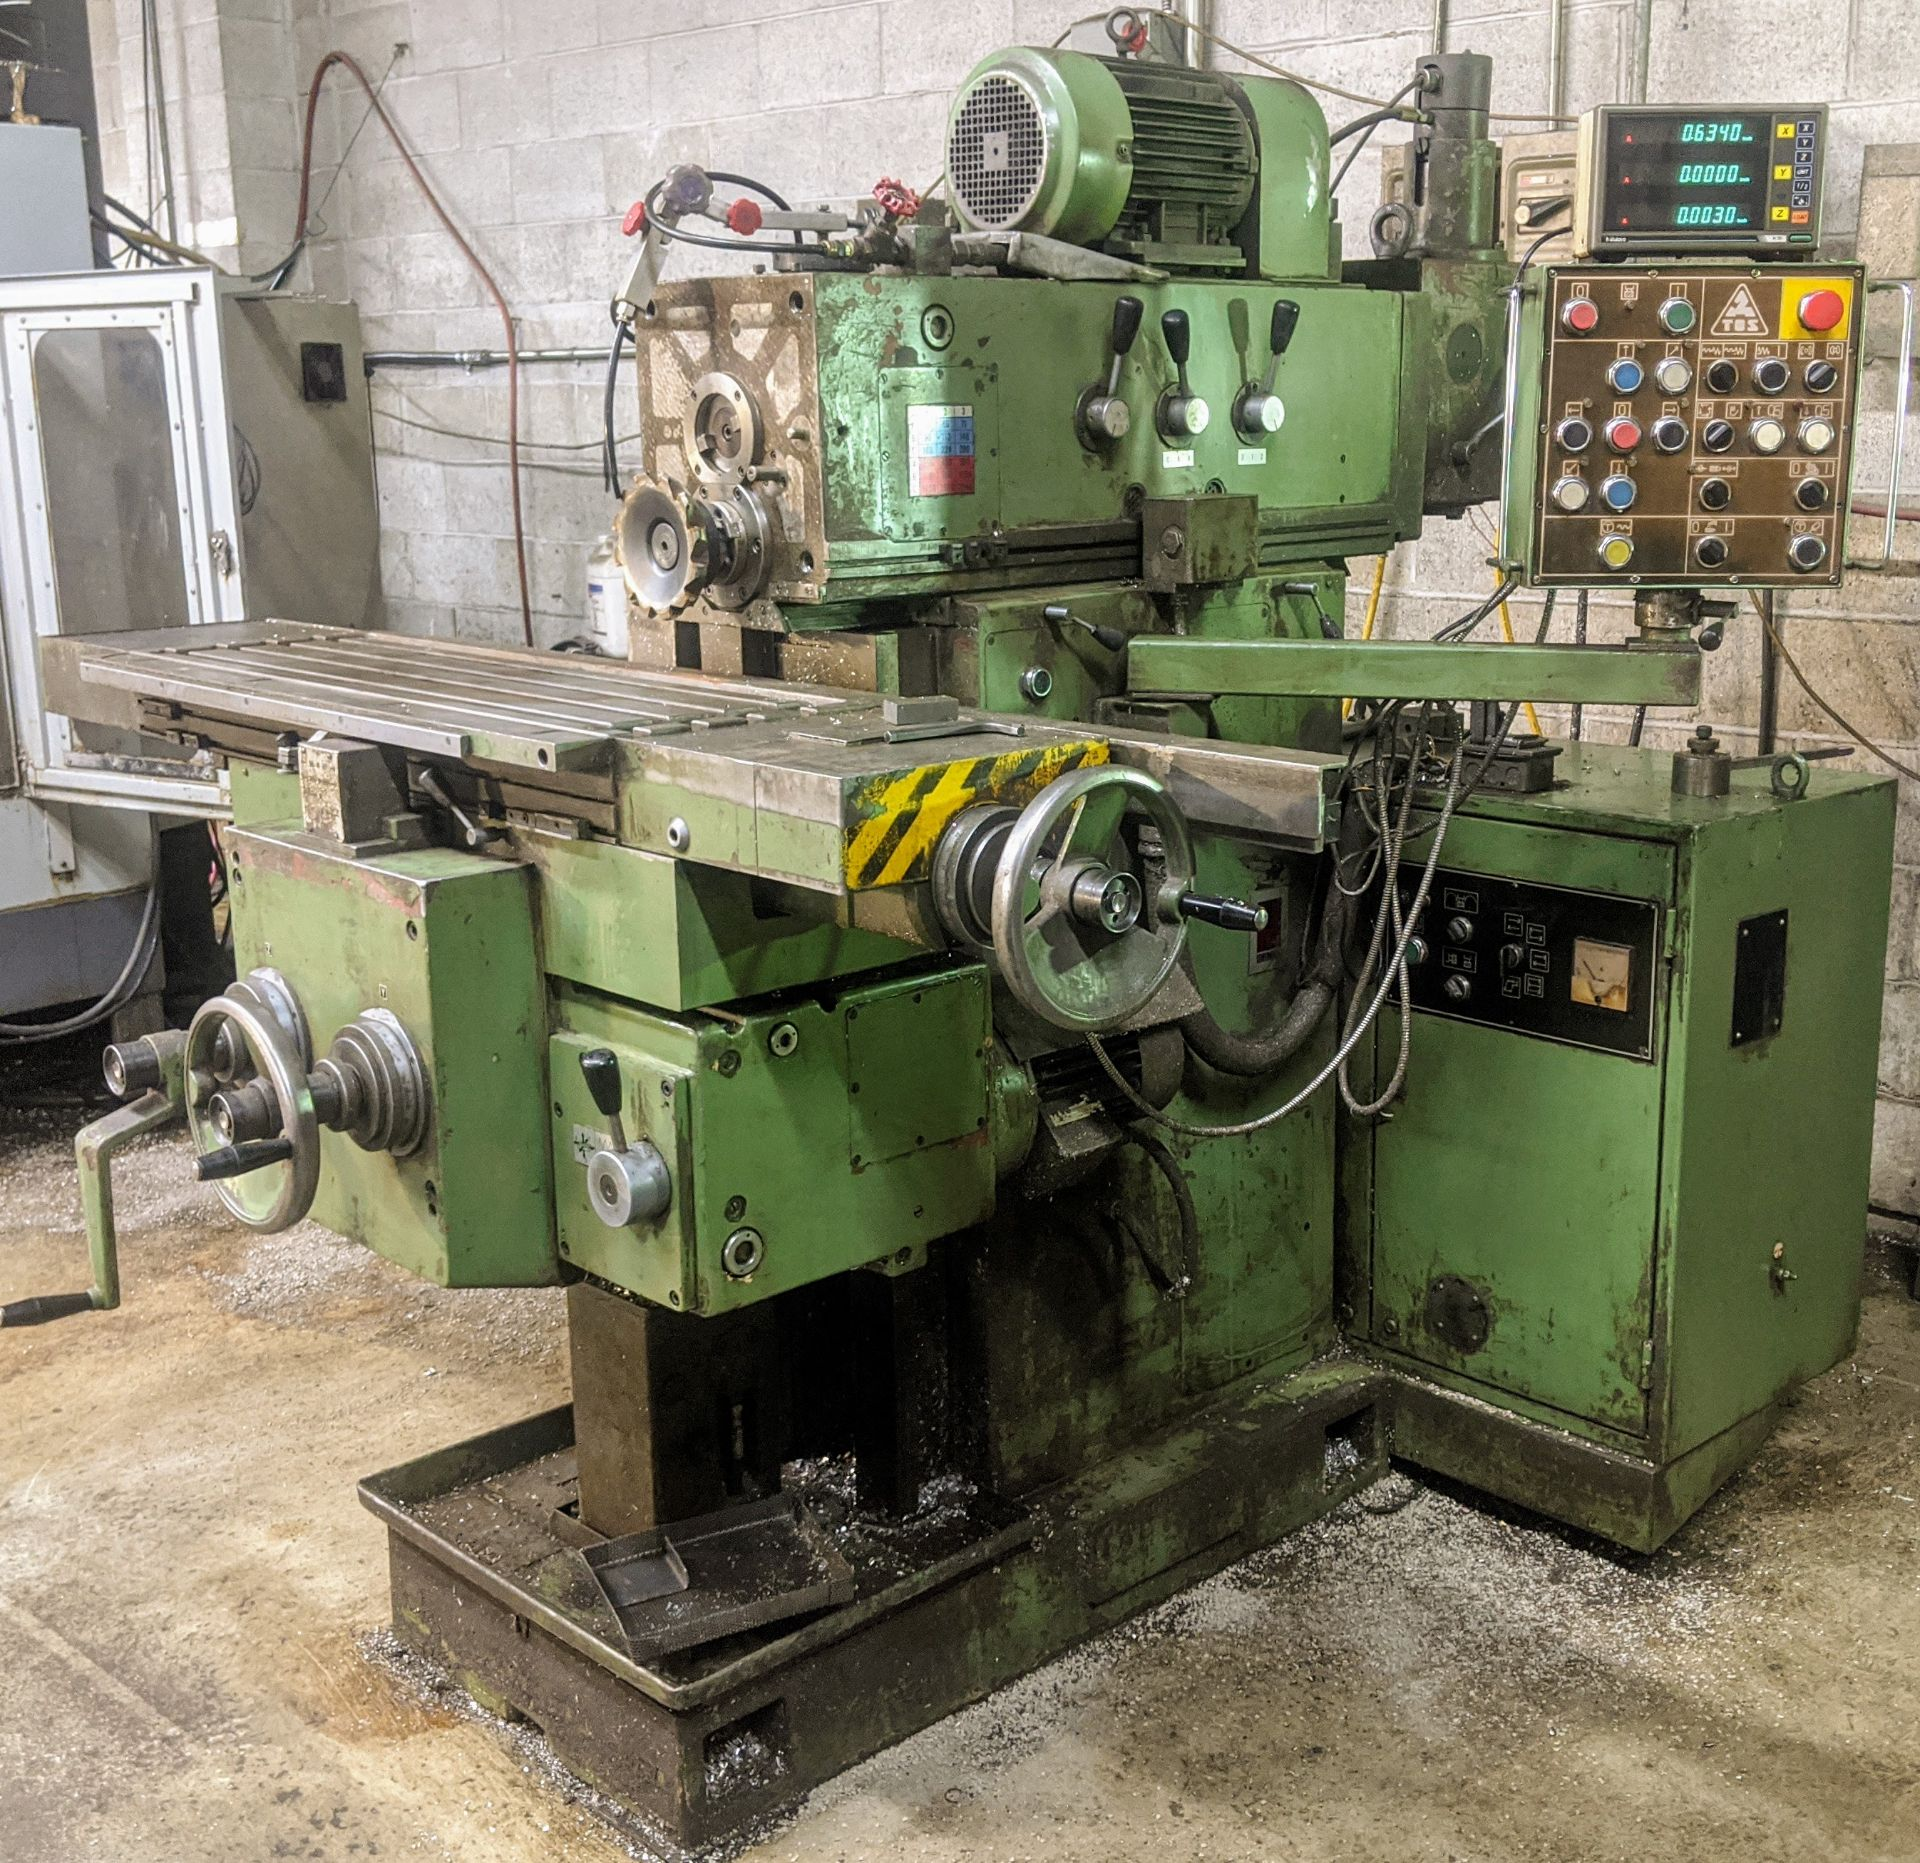 "Lot 35 - TOS FGS 25.32 Universal Mill, Mitutoyo 3-Axis DRO, 12"" x 40"" Table, Speeds to 2,240 RPM"